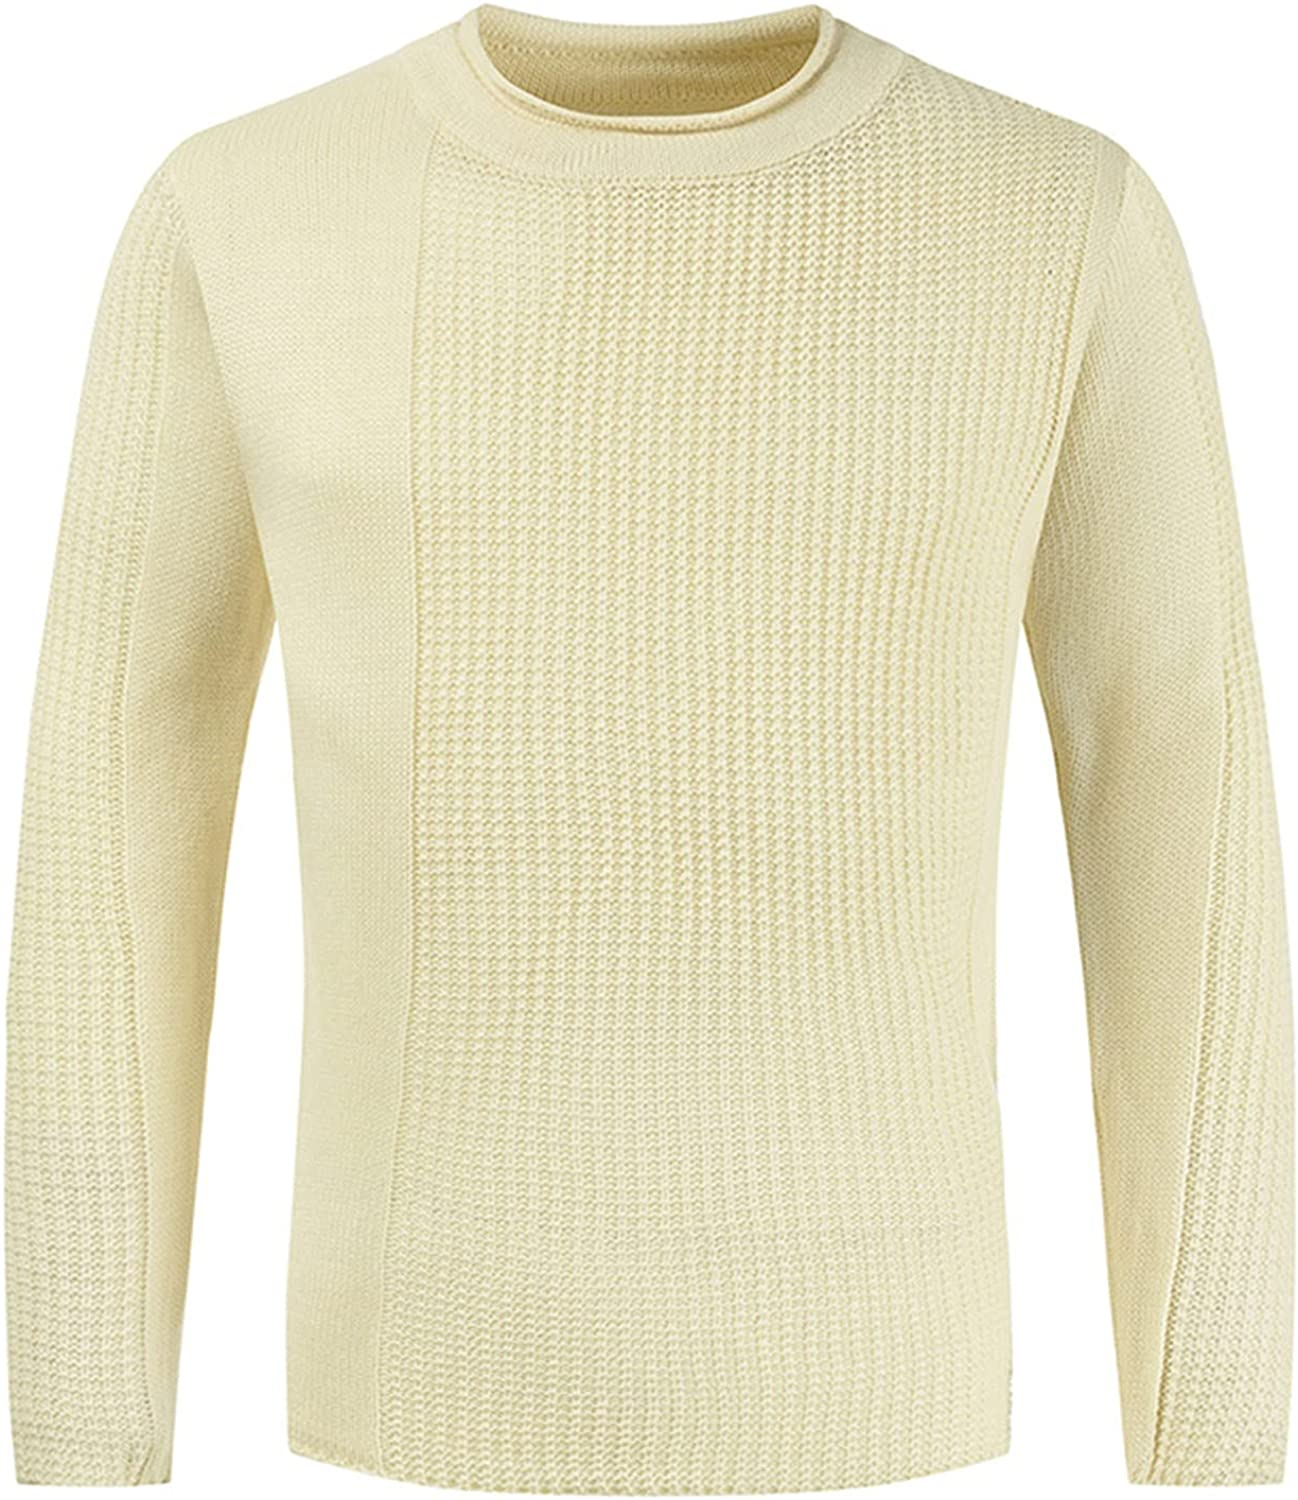 UBST Knitted Sweater for Mens, Fall Winter Basic Crewneck Pullover Solid Warm Casual Bottoming Jumper Tops